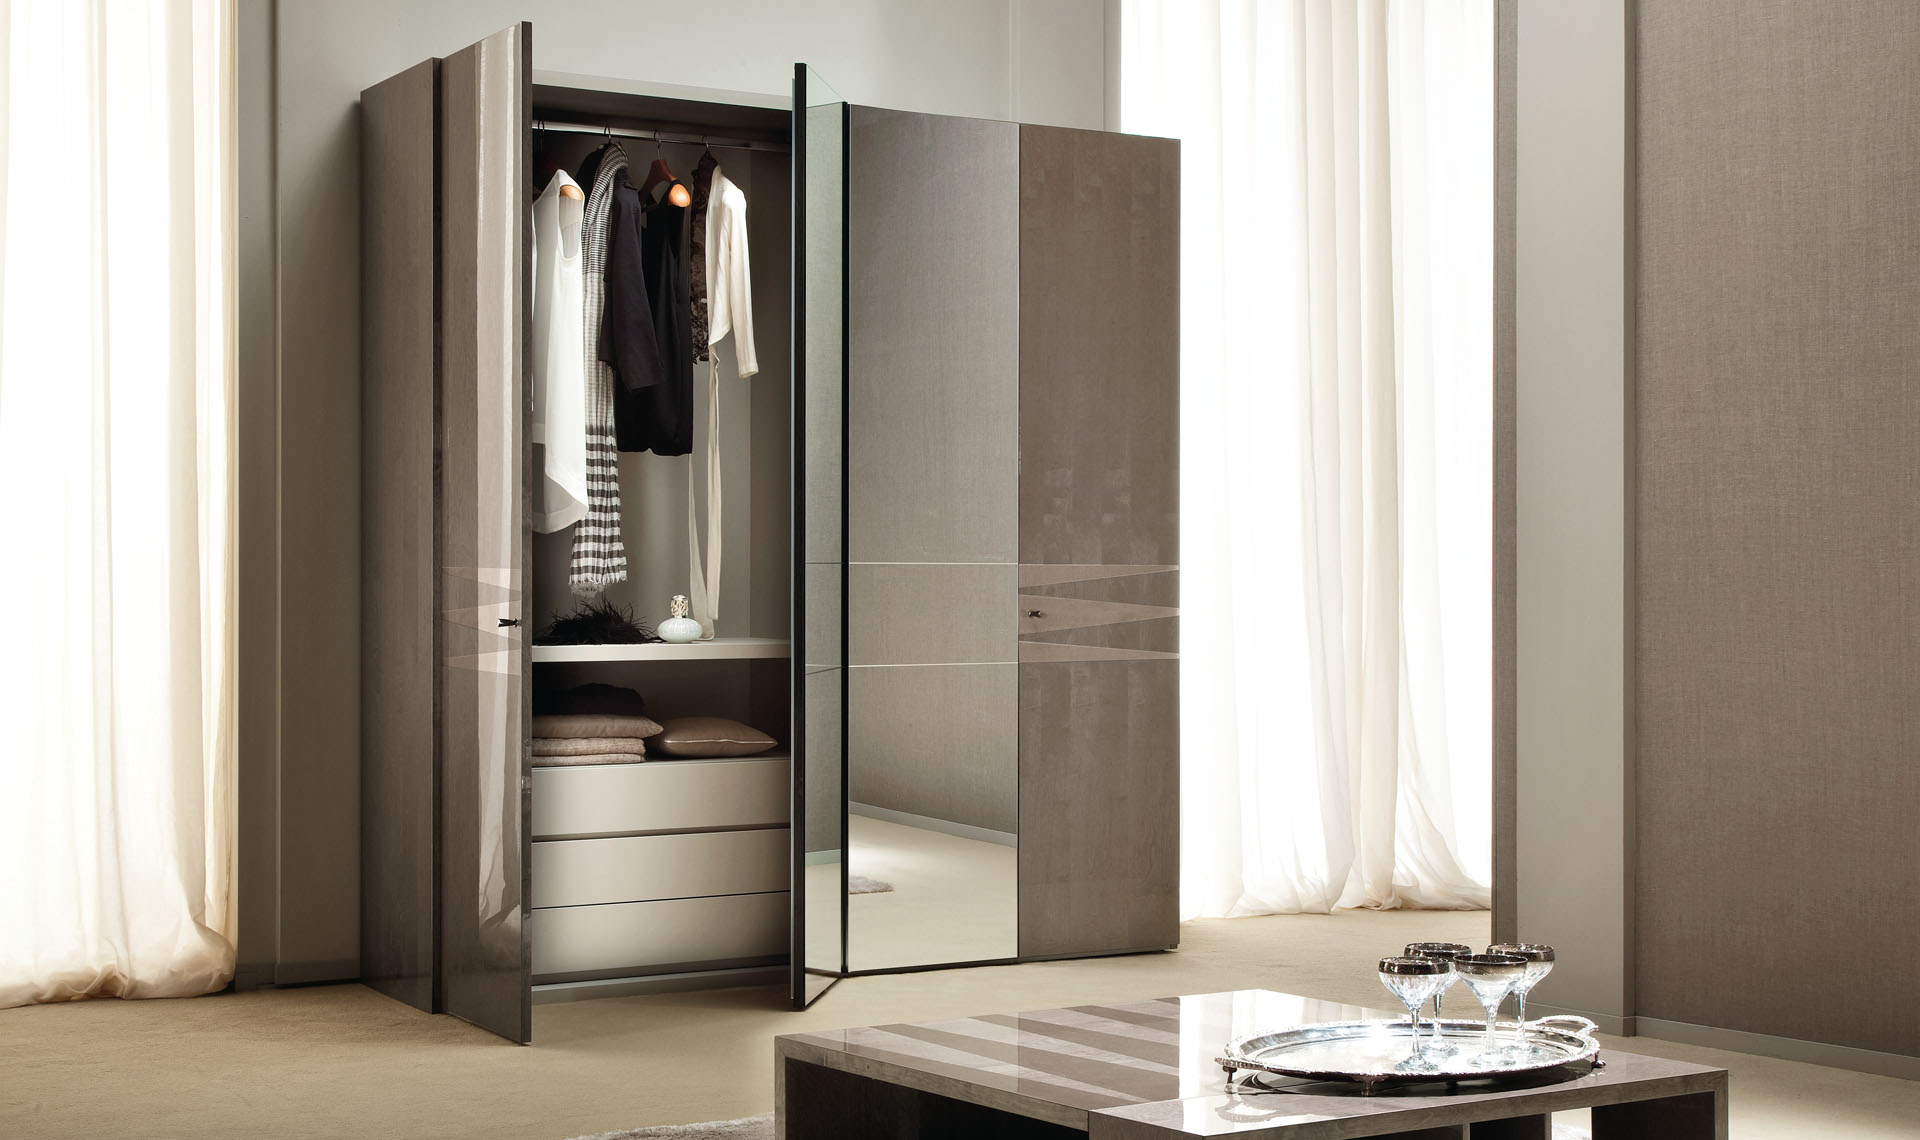 Monaco Bedroom 4/D Swinging Wardrobe Details